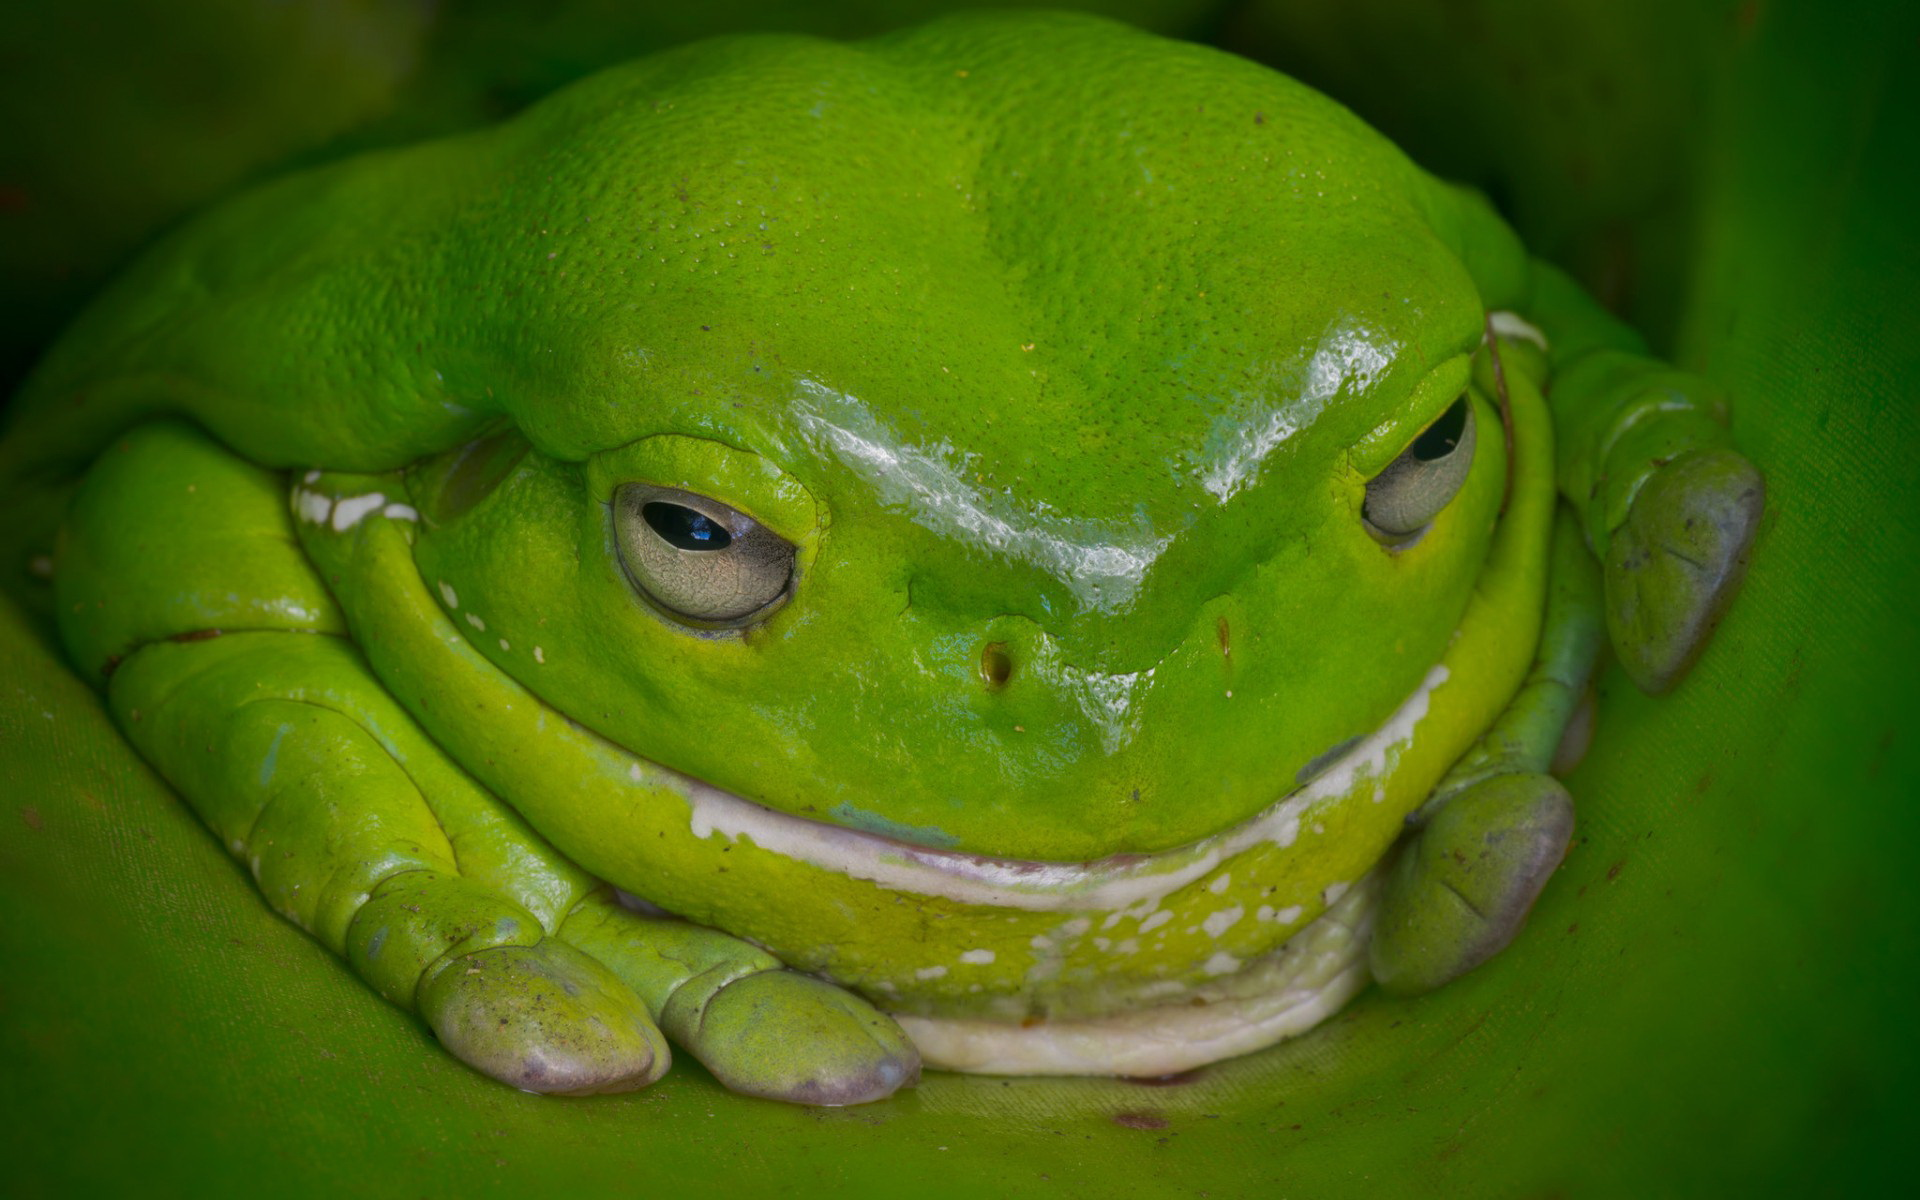 Beautiful Frog Wallpaper Download For Free Goats Animal: Frog Full HD Wallpaper And Background Image